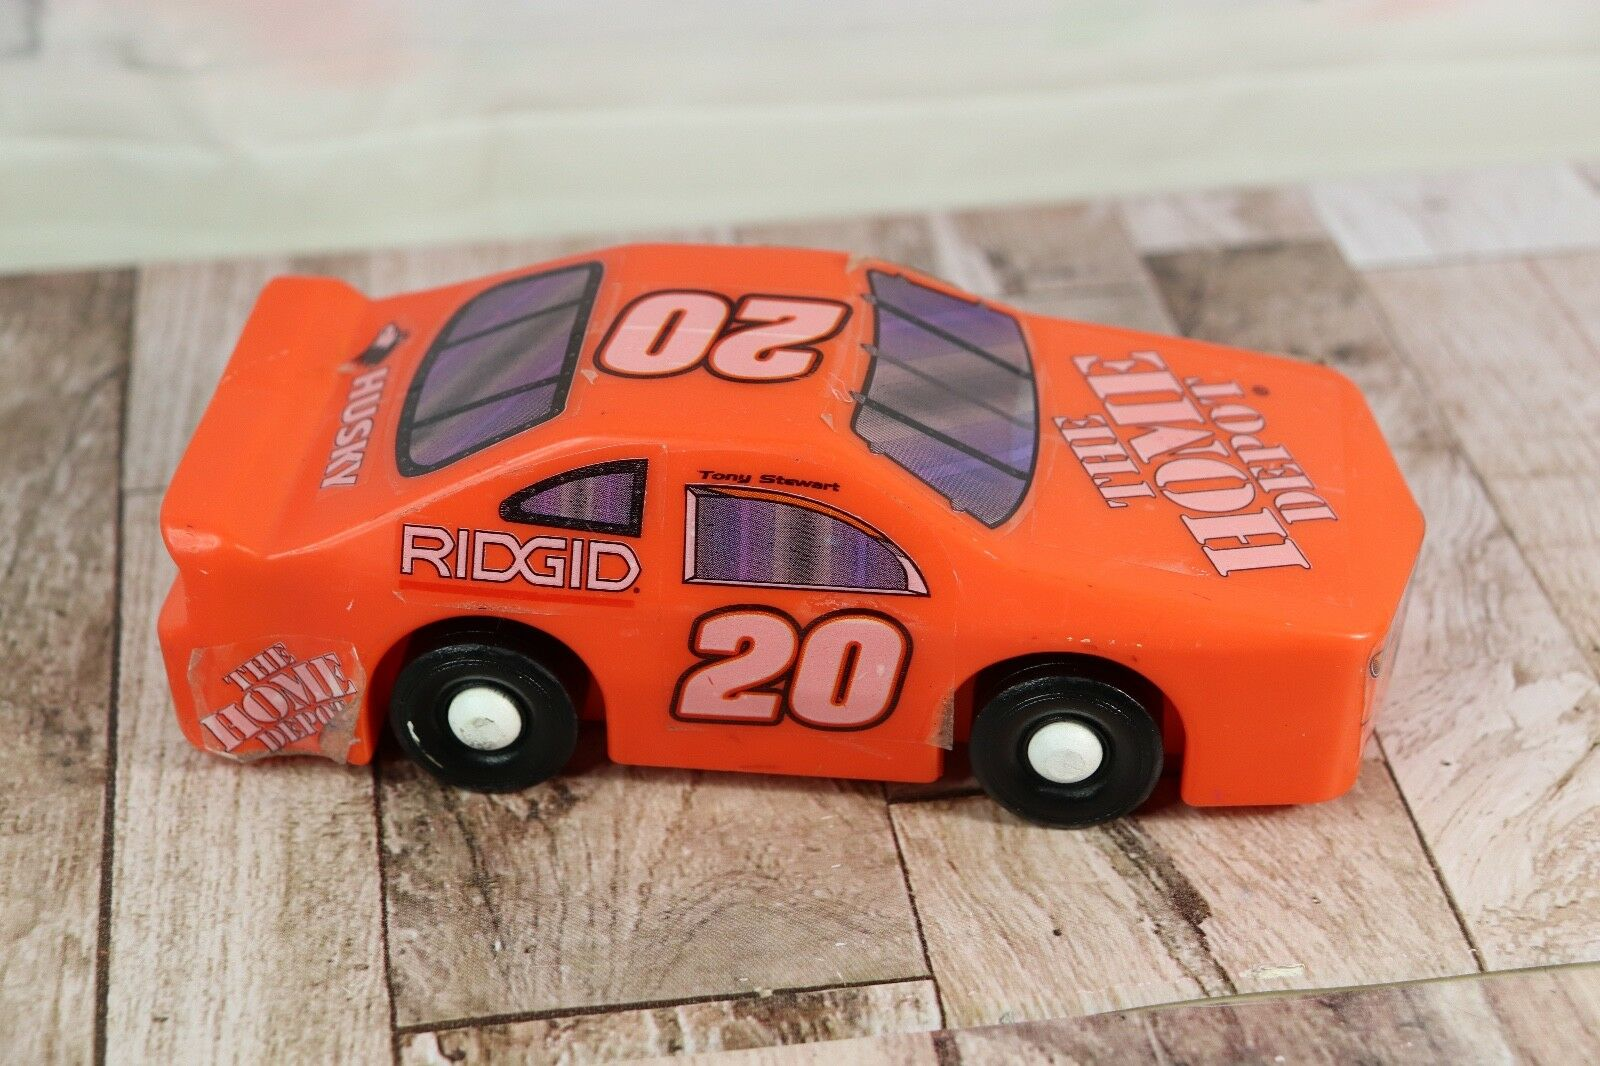 The Home Depot Toy Car Ridgid Husky Tony Stewart